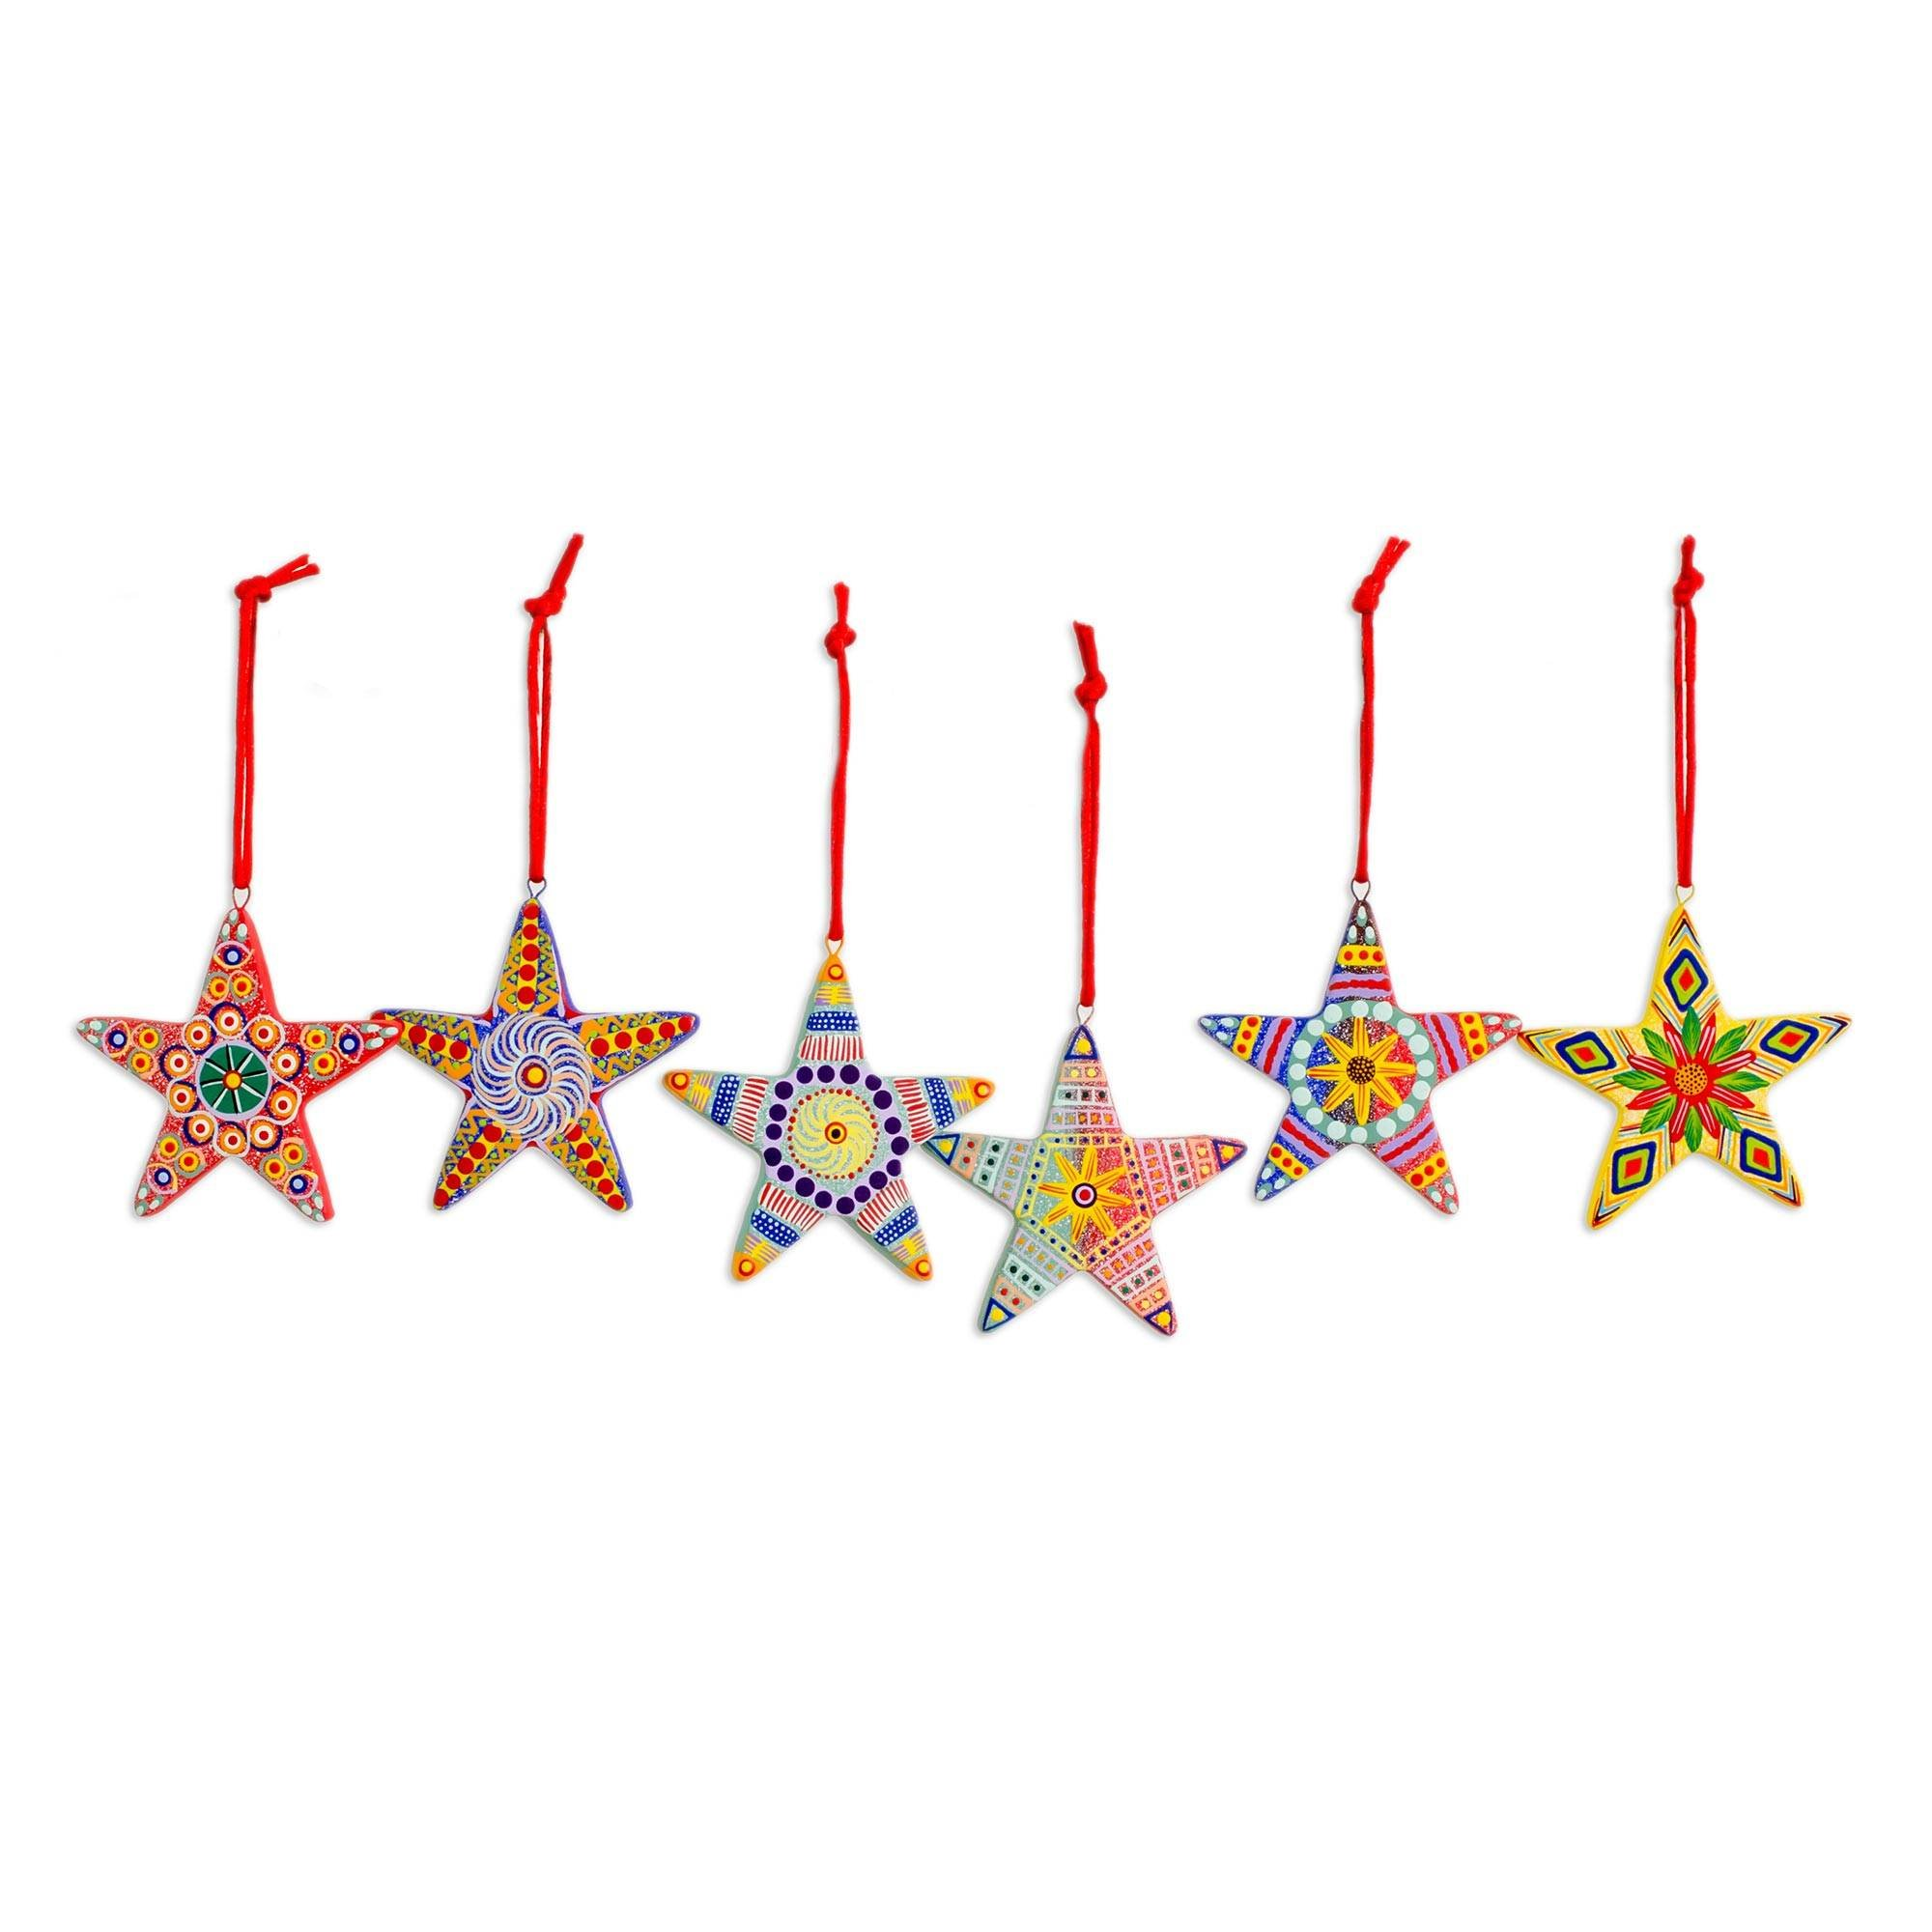 NOVICA Hand Painted Multi-Color Ceramic Holiday Ornaments, Christmas Star' (Set of 6), Made in Central America